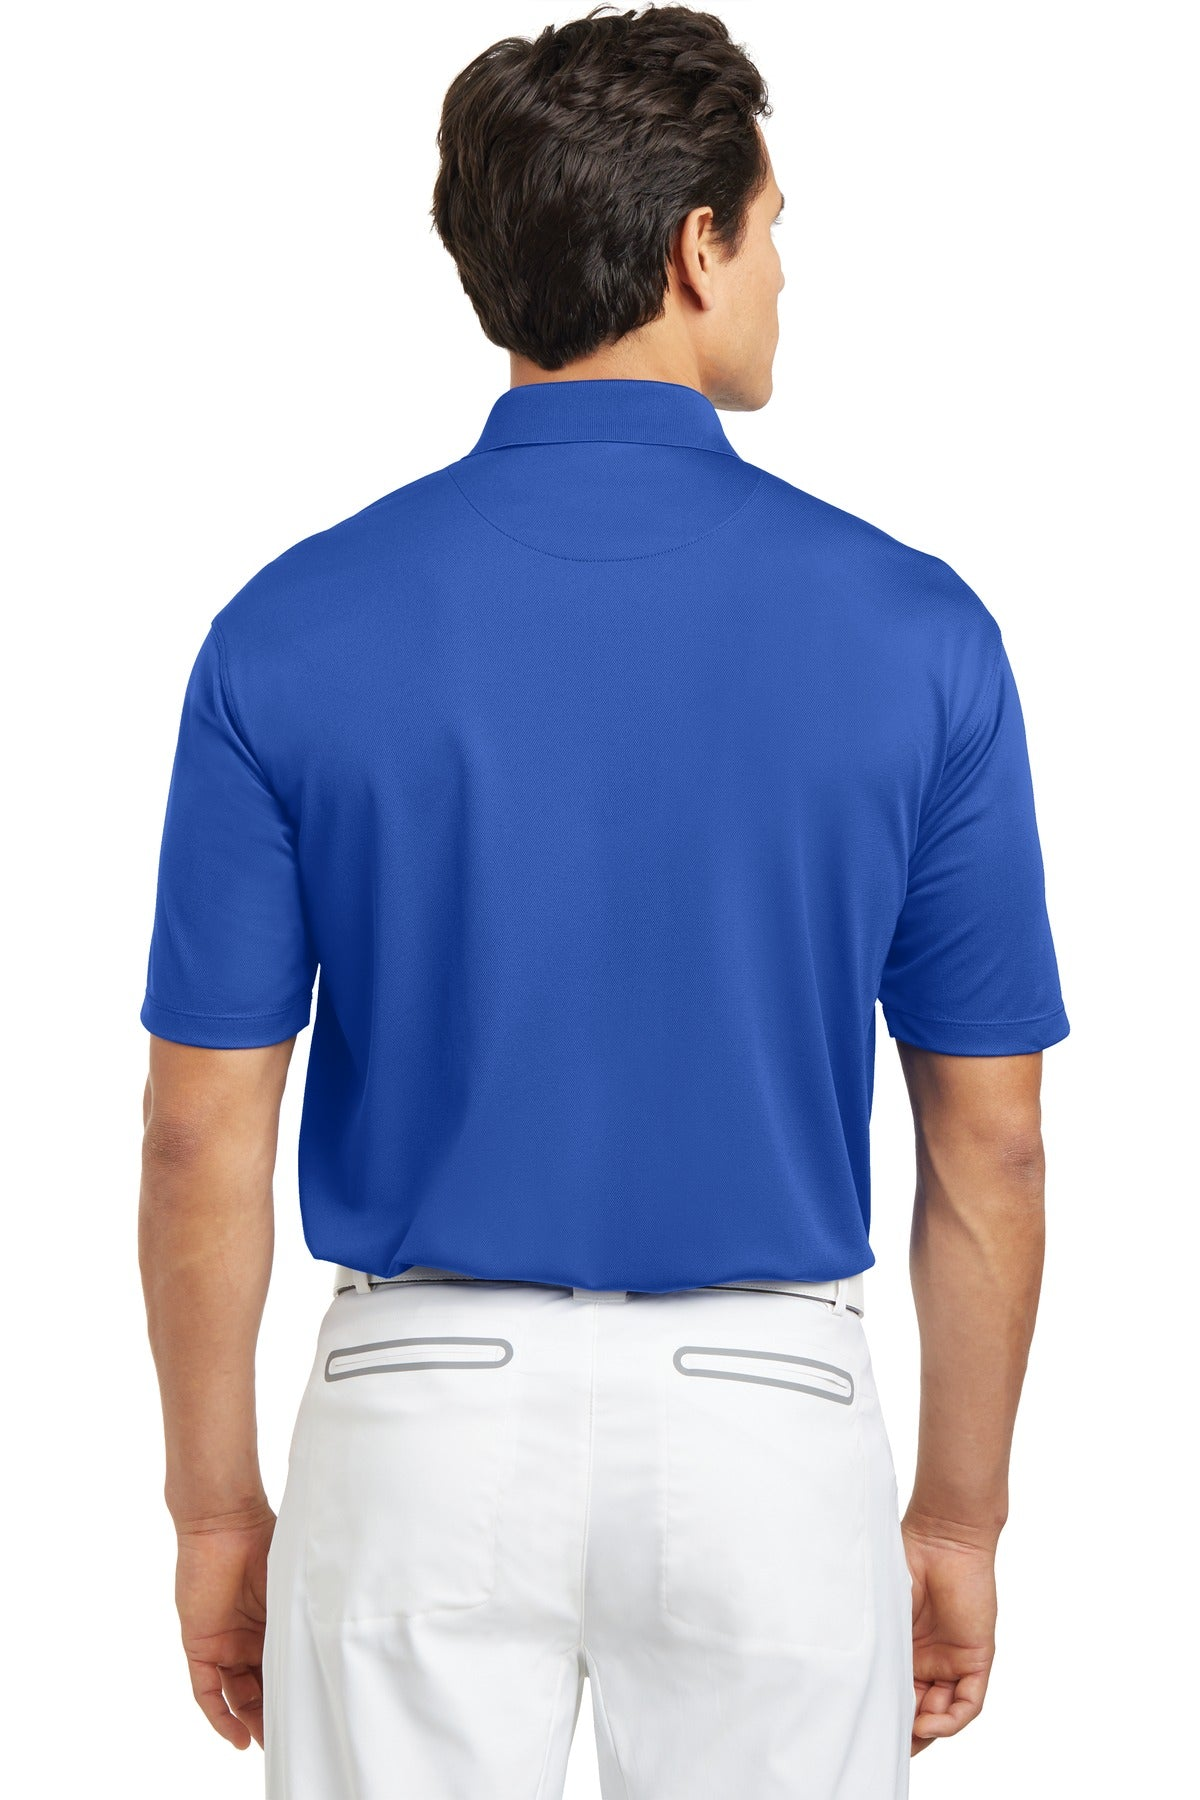 Varsity Royal Nike Tech Basic Dri-FIT Polo.